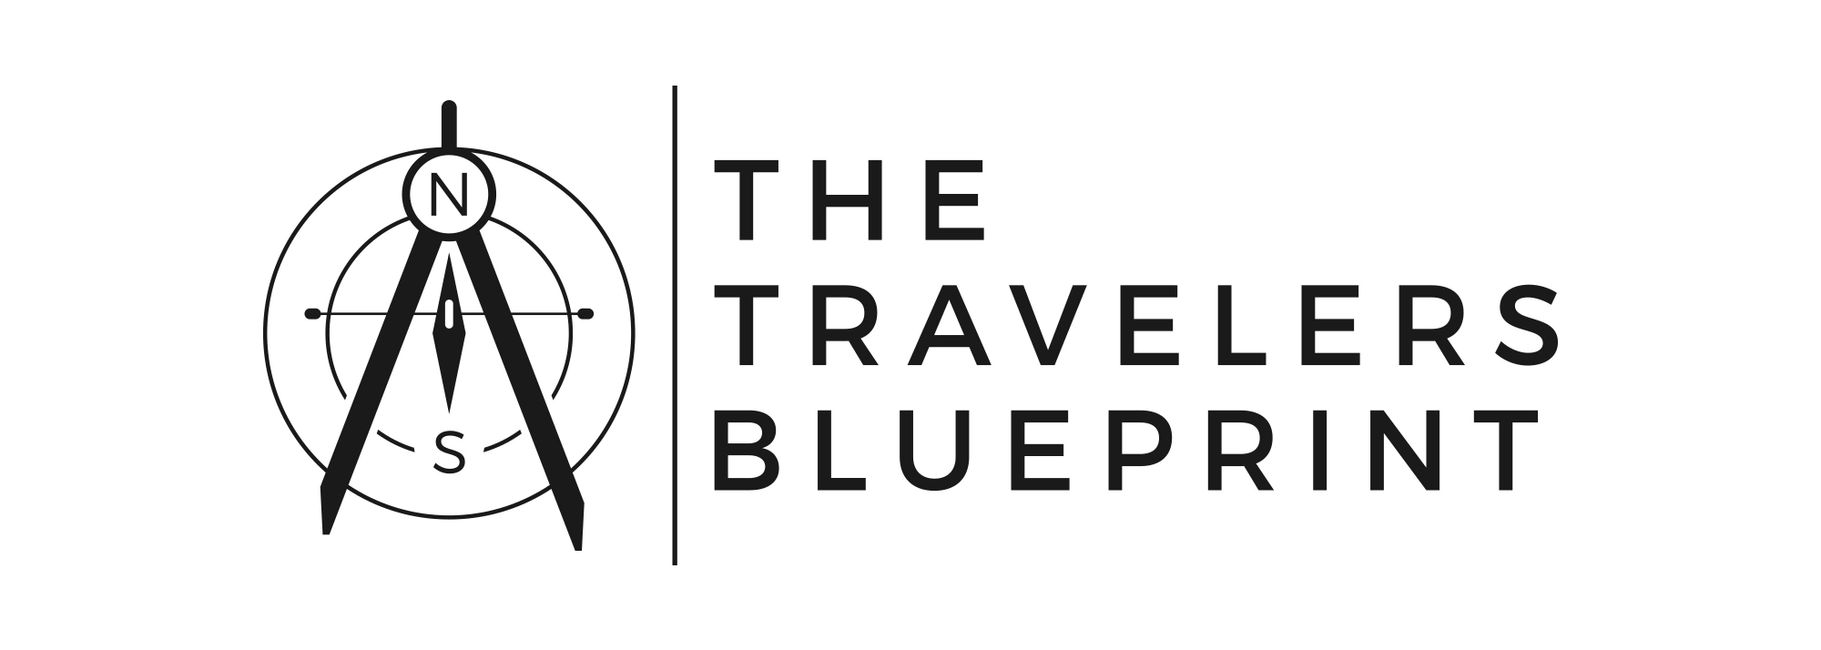 The Travelers Blueprint, Bob DiMenna, Elliot Shibley, Travel News, Traveling, Travel Podcast, Best